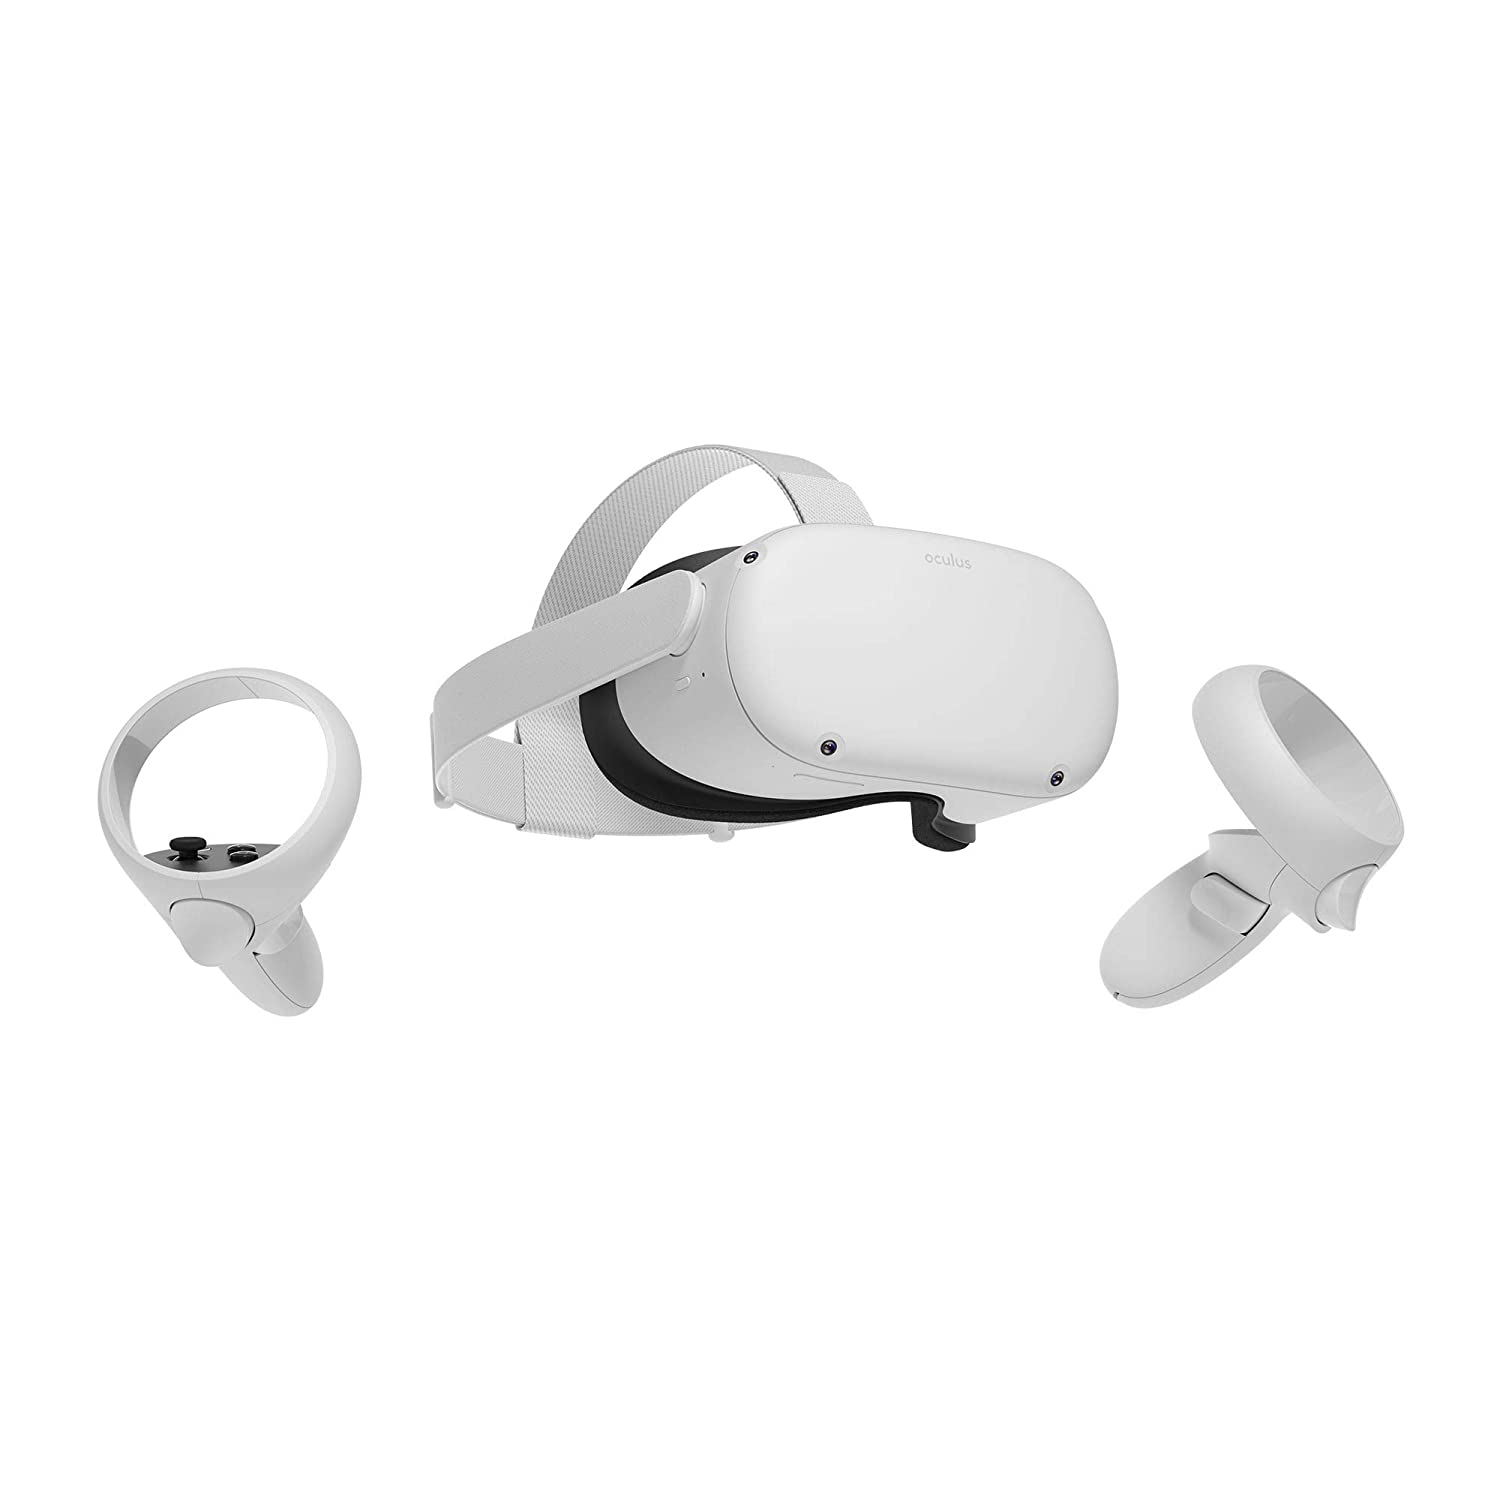 Oculus Quest 2 — Advanced All-In-One Virtual Reality Headset (64GB)